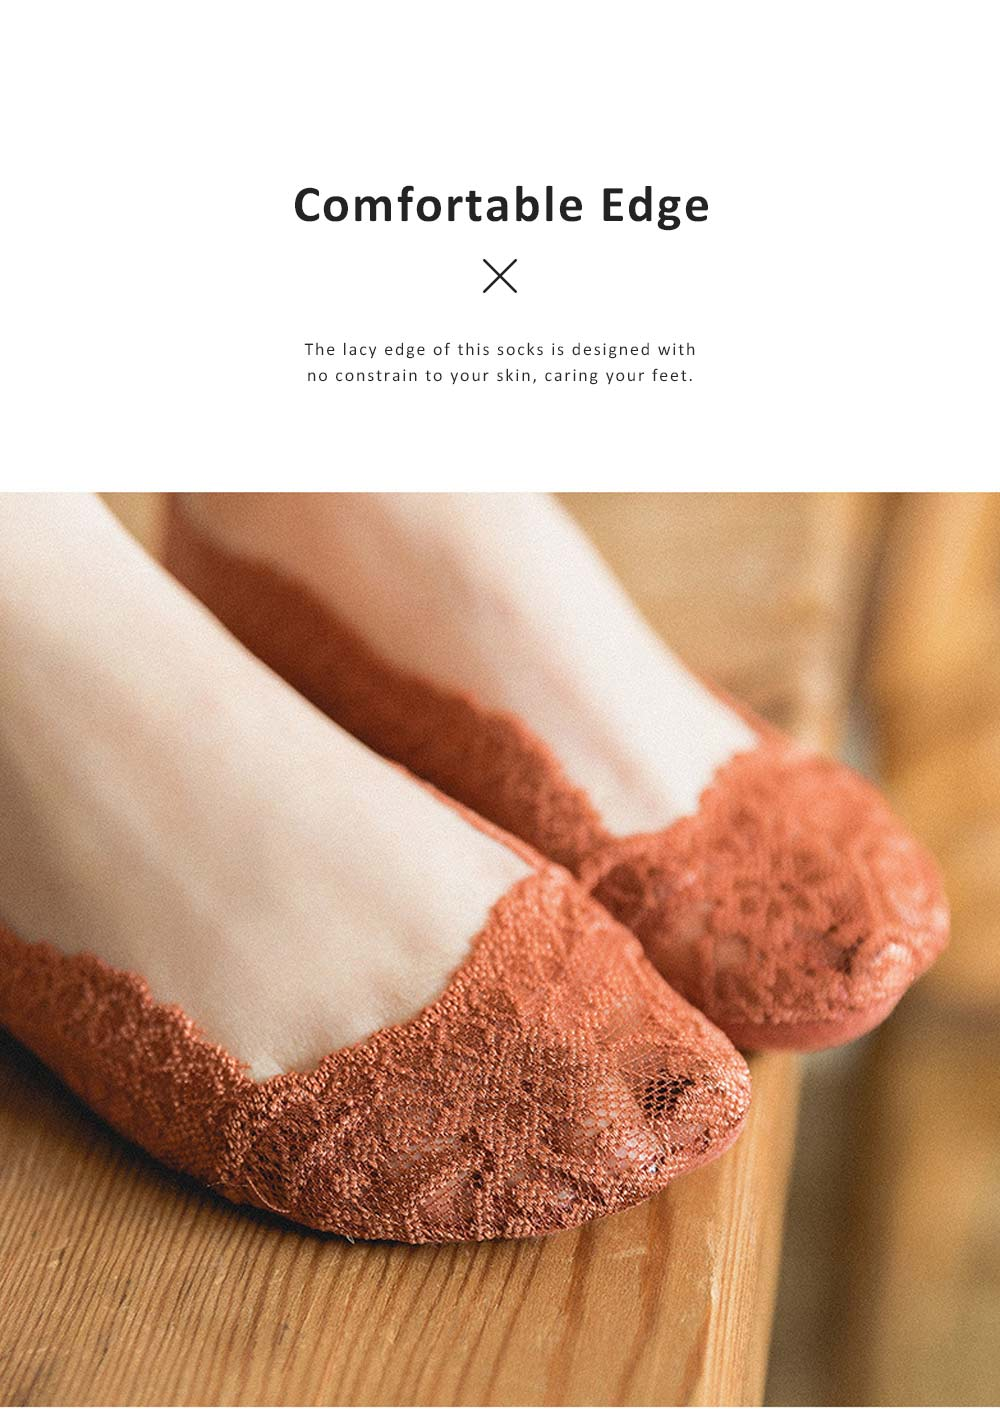 Summer Latest Thin Korean Style Lace Socks for Girls, Comfortable & Breathable Low-cut Invisible Ankle Socks 5